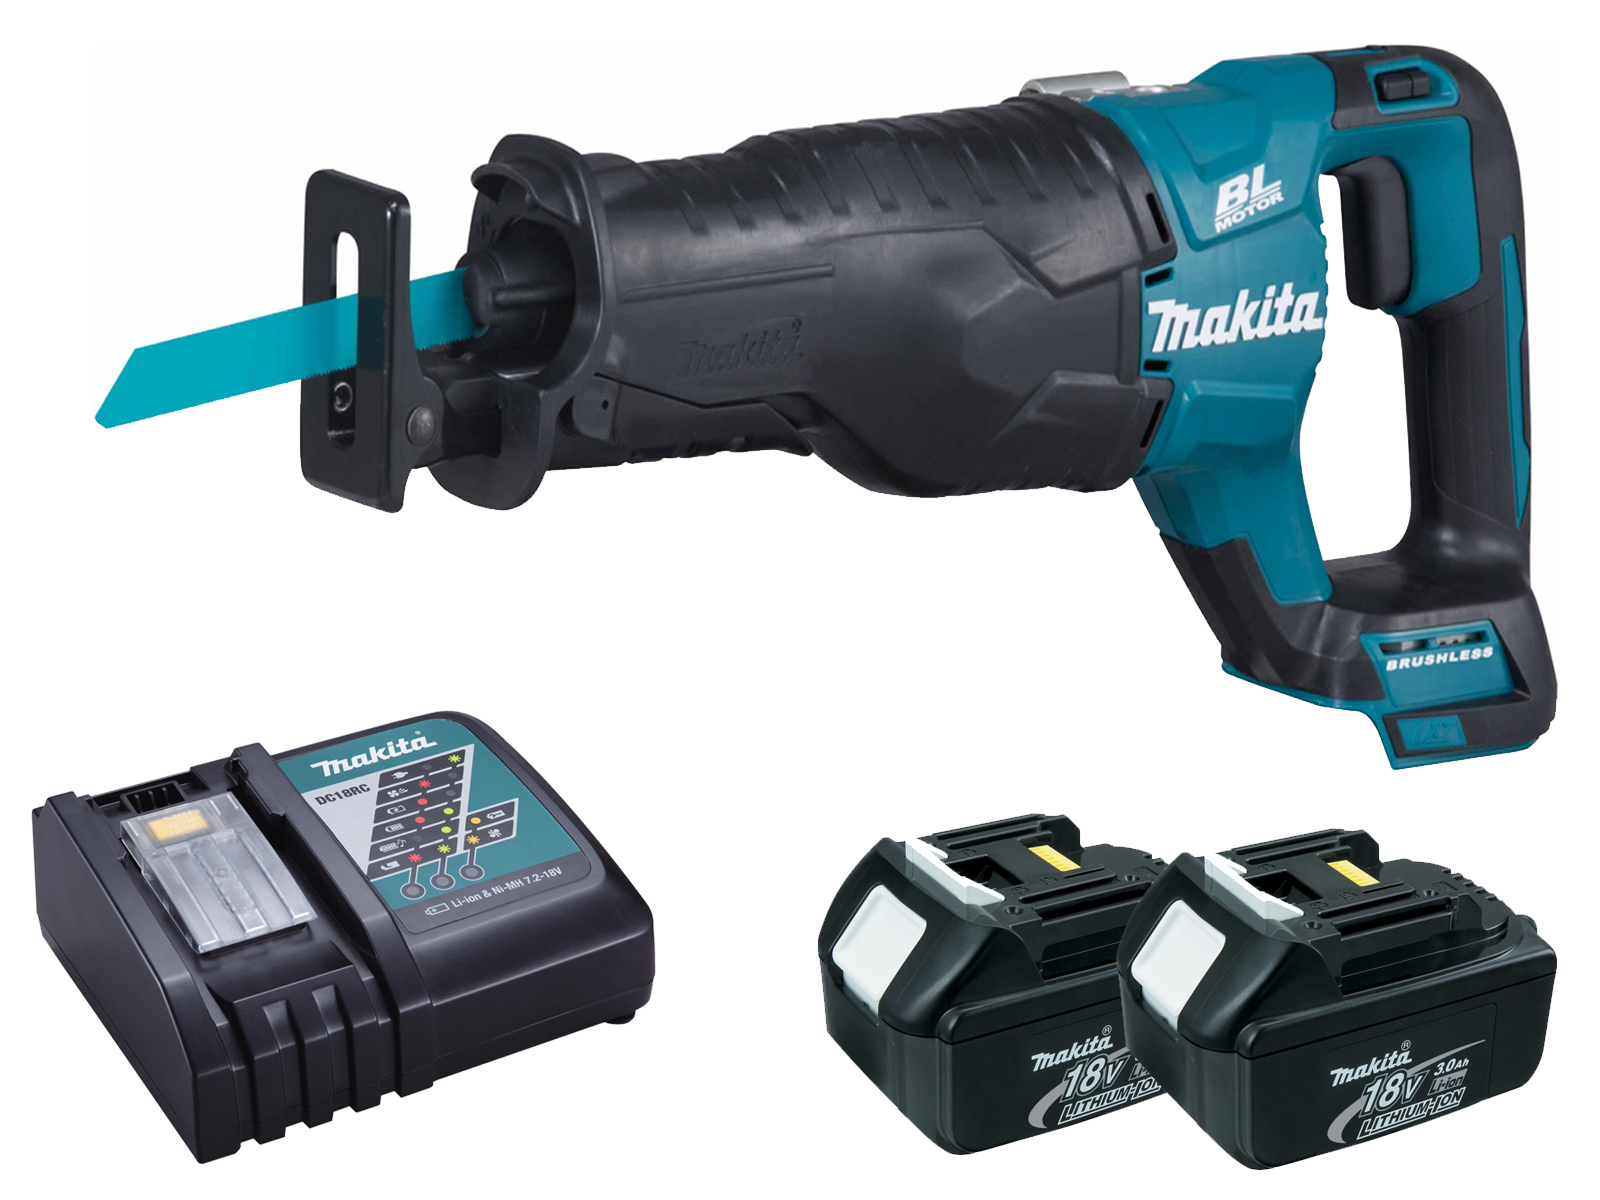 Makita DJR187 18V LXT Brushless Reciprocating Saw - 3.0ah Pack